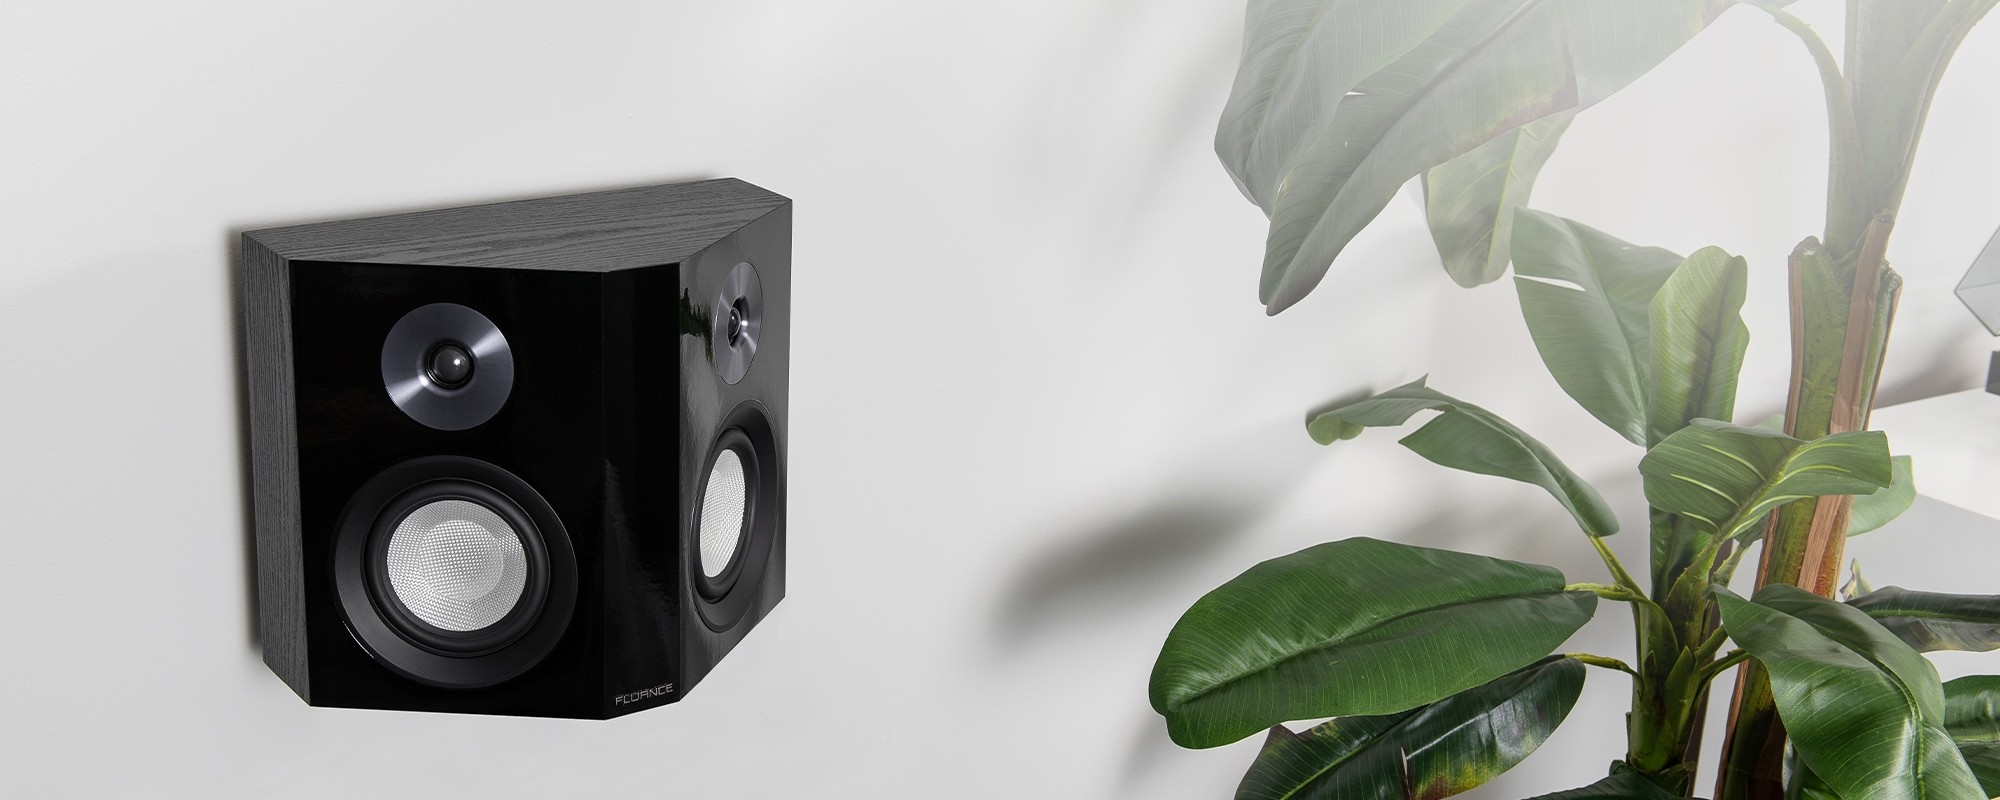 XLBP Bipolar Surround Sound Speaker with plant